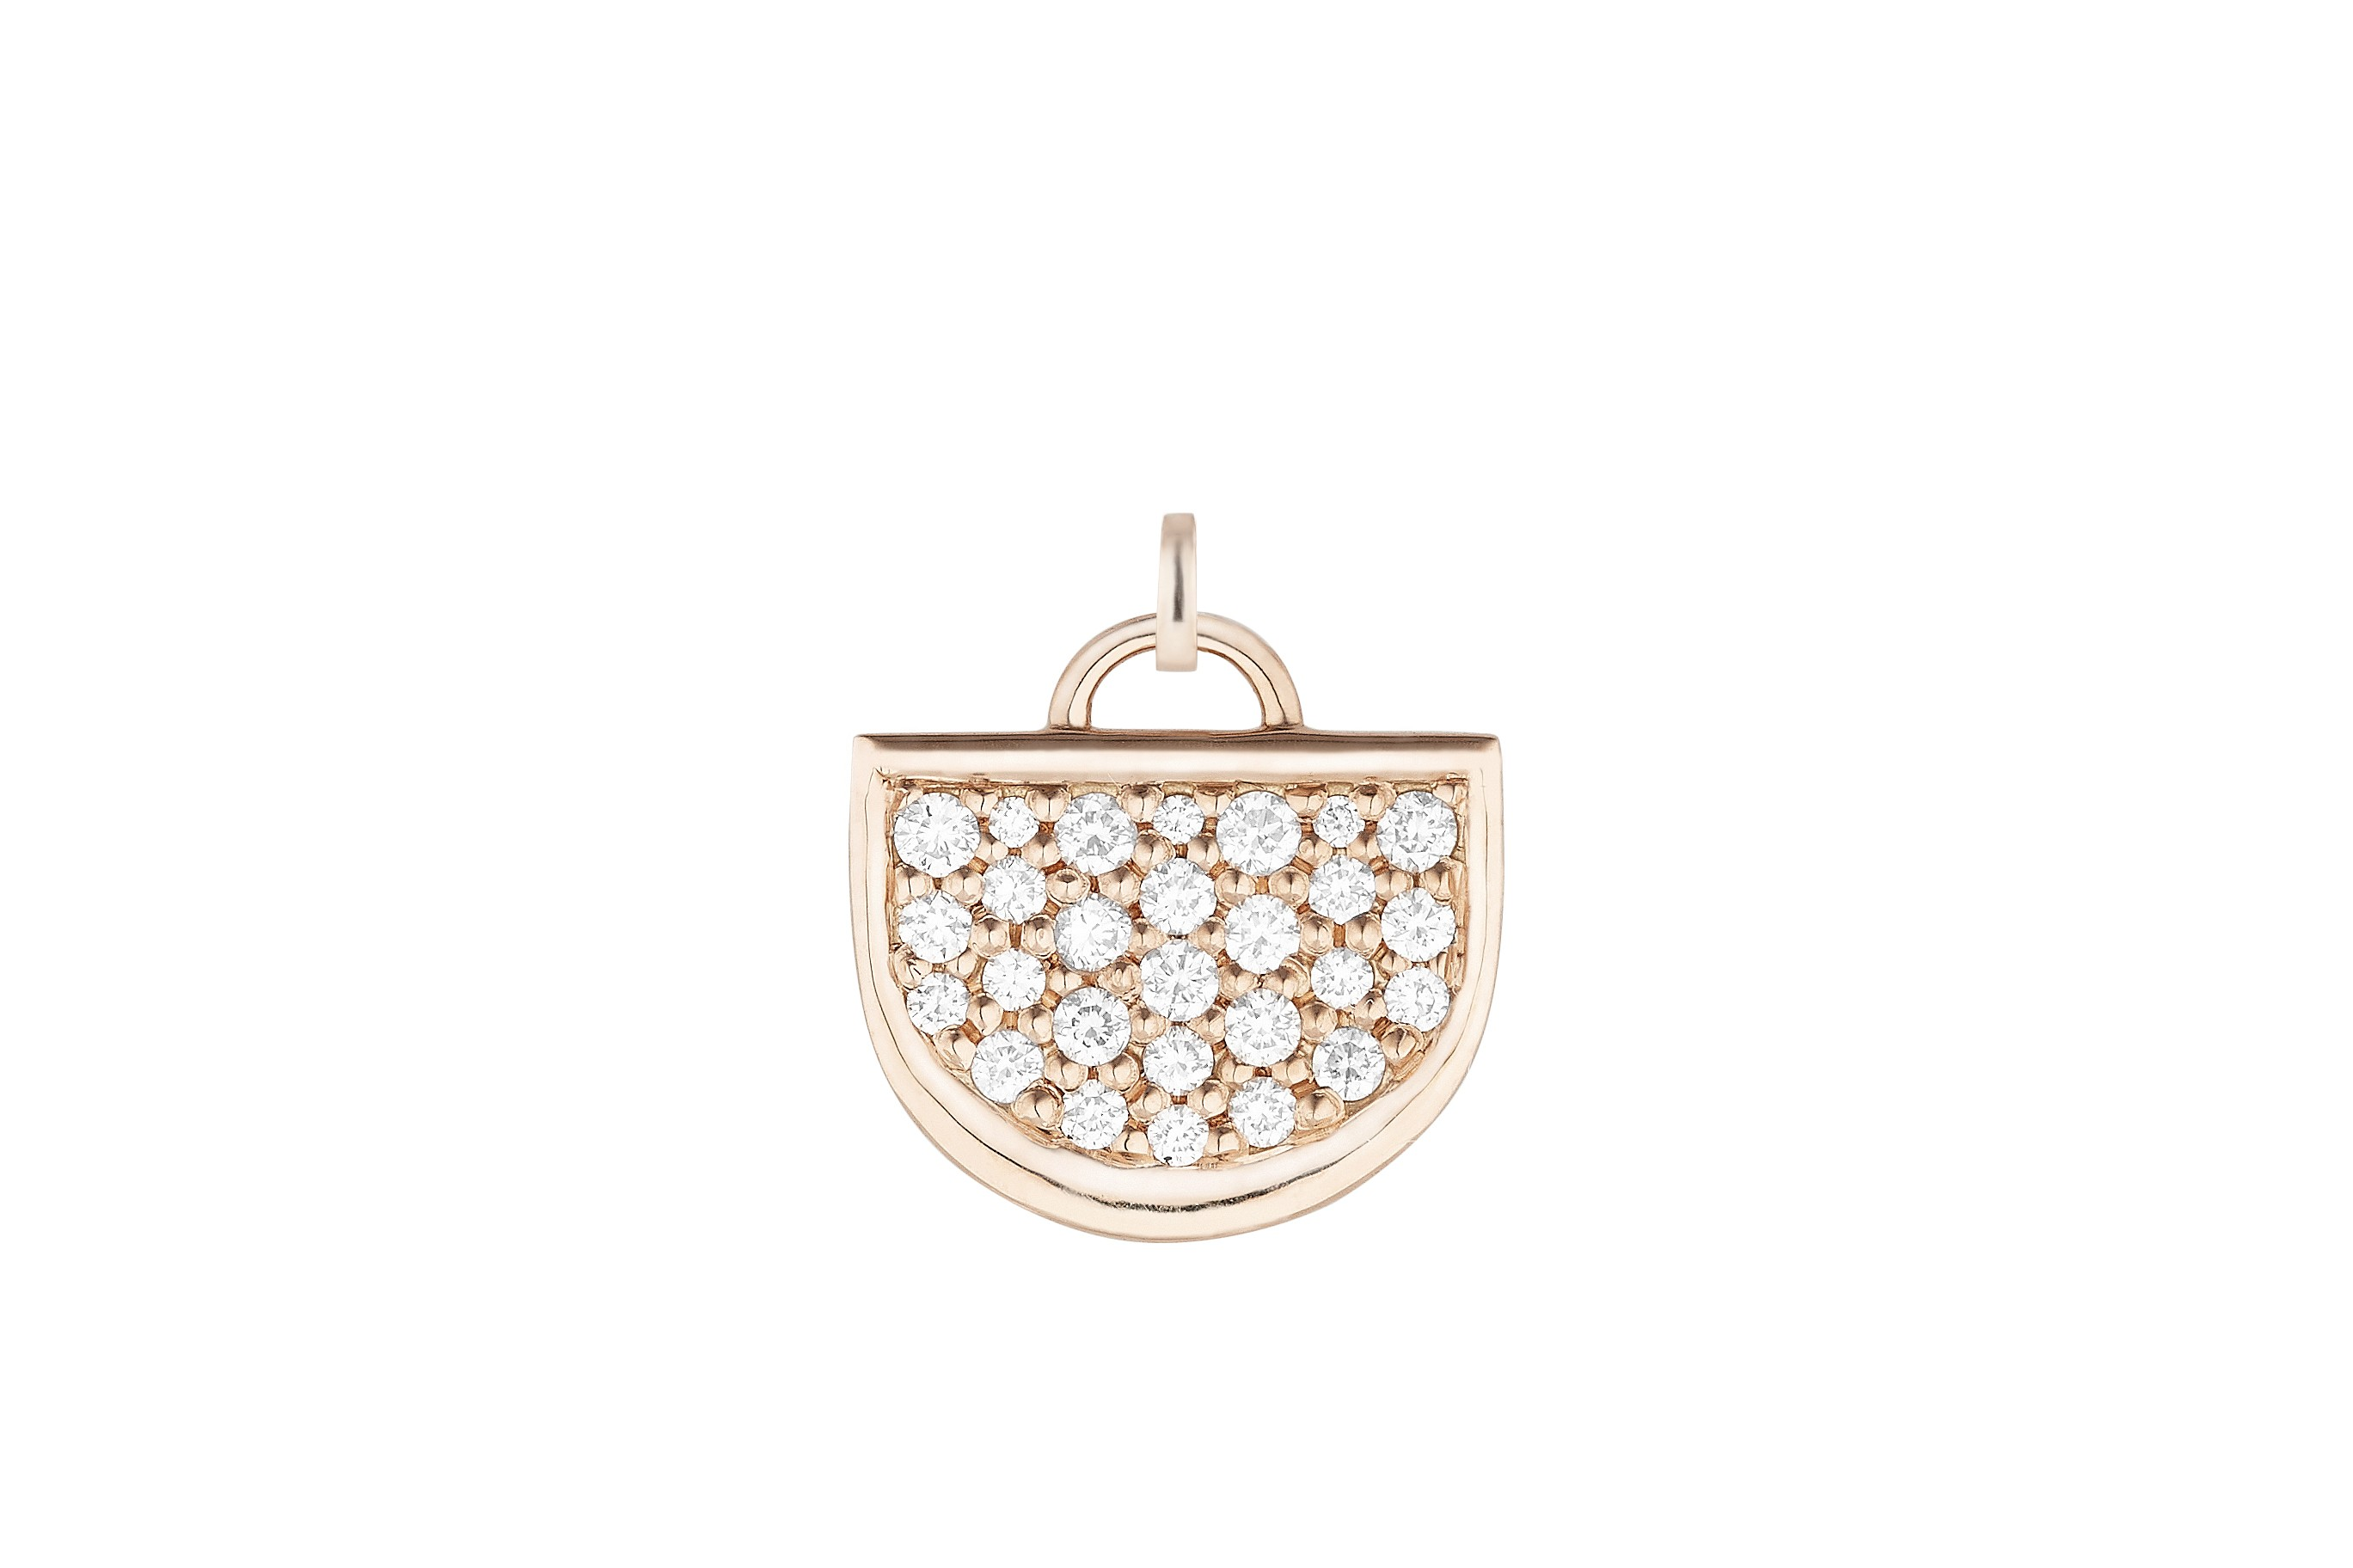 18K Rose Gold Monogram Single D Charm with Lab Created Diamond Pave w/Removable Bail